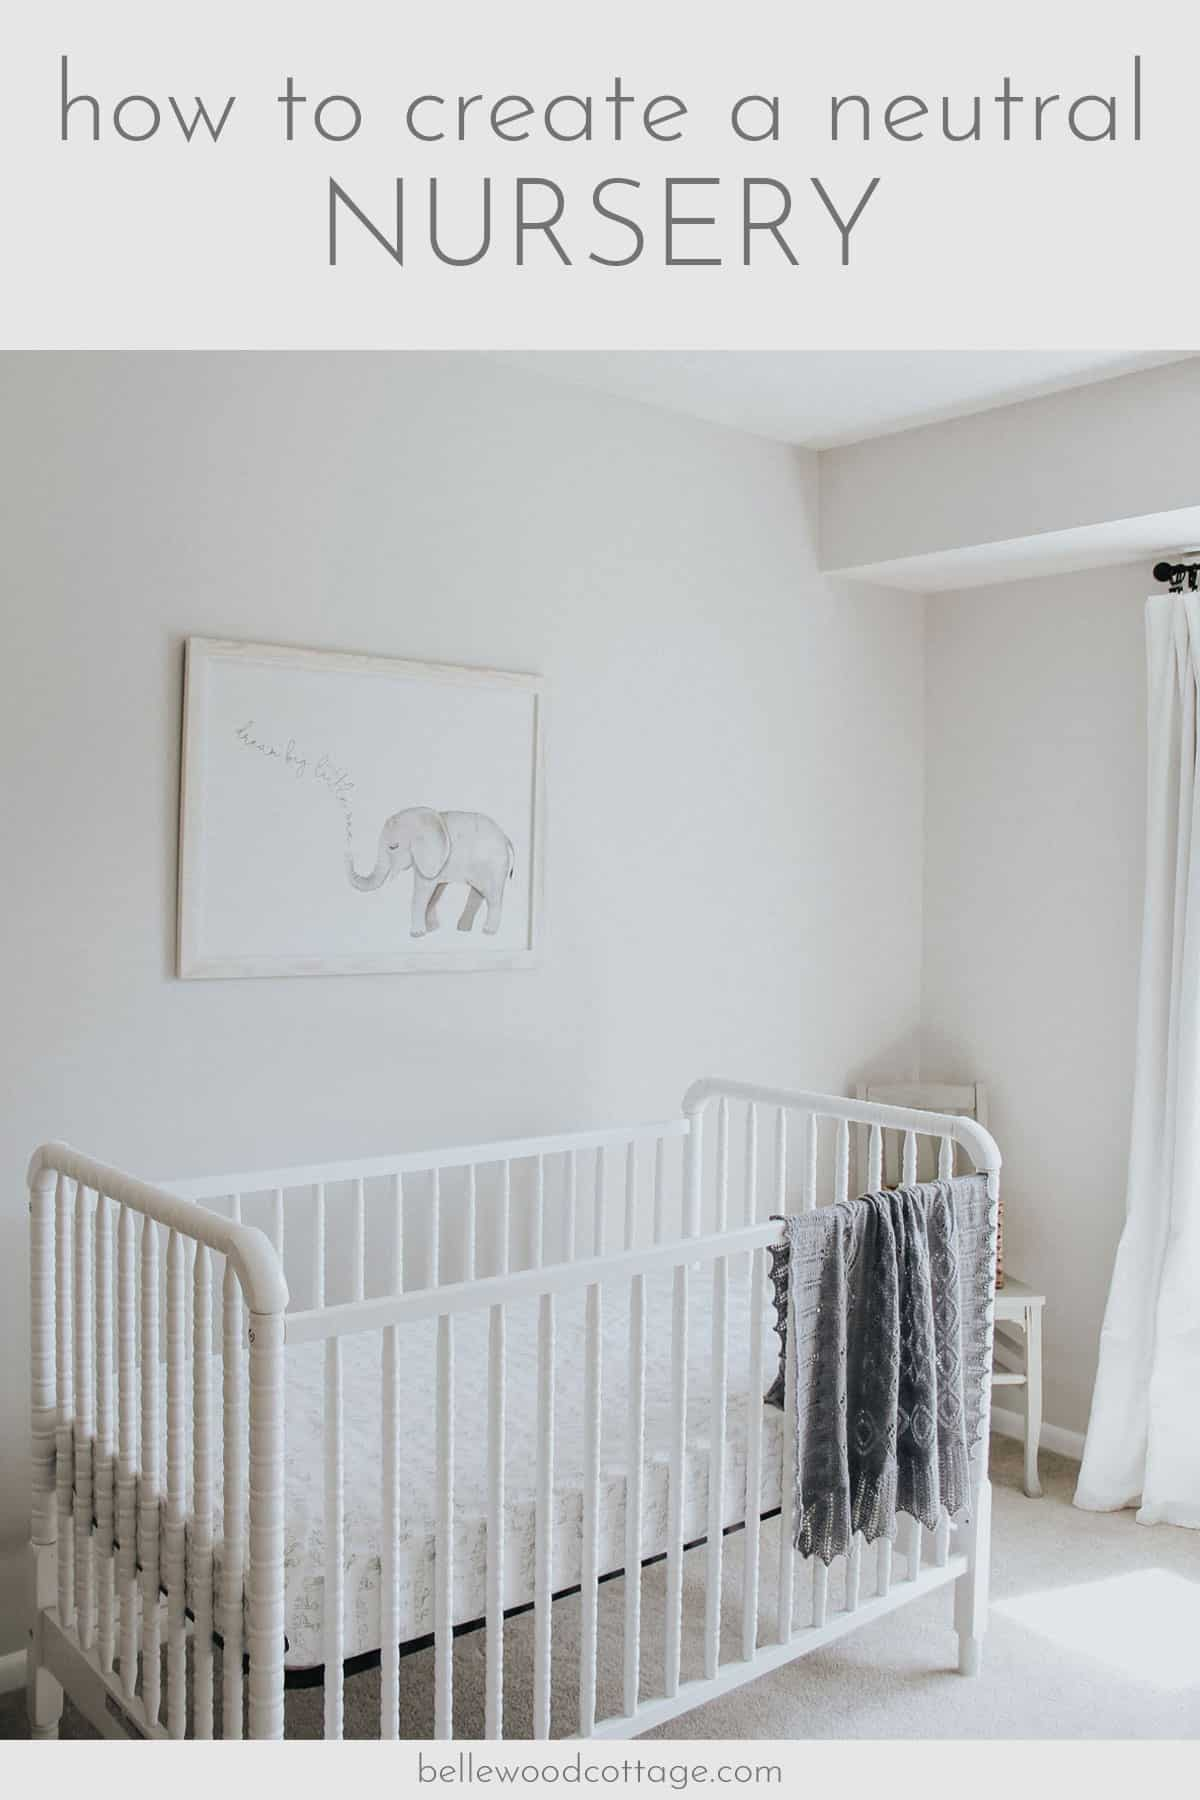 Jenny Lind crib, elephant art, and hand knit heirloom blanket in a gray nursery.